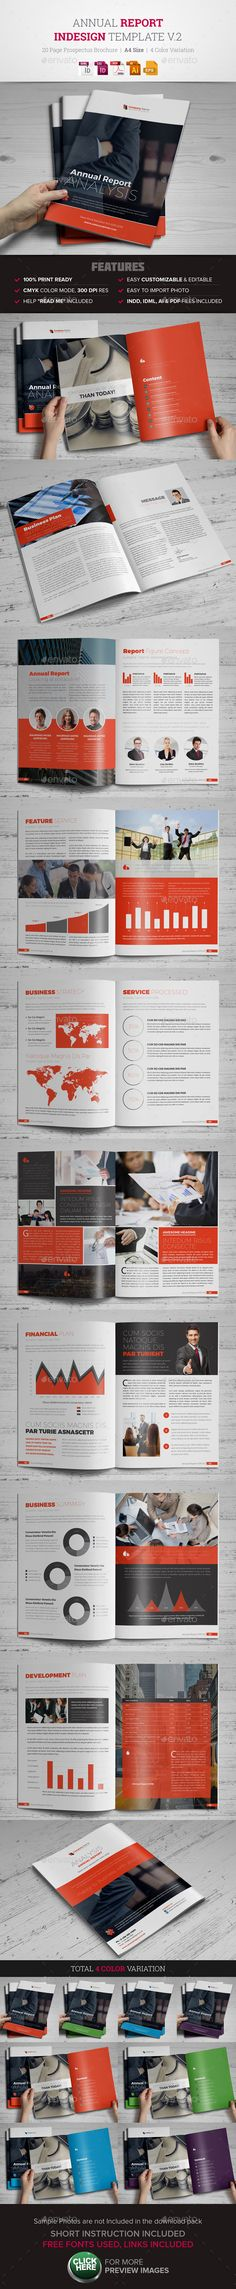 Annual Report InDesign Template #design #broschüre Download: http://graphicriver.net/item/annual-report-indesign-template-v2-/12499207?ref=ksioks